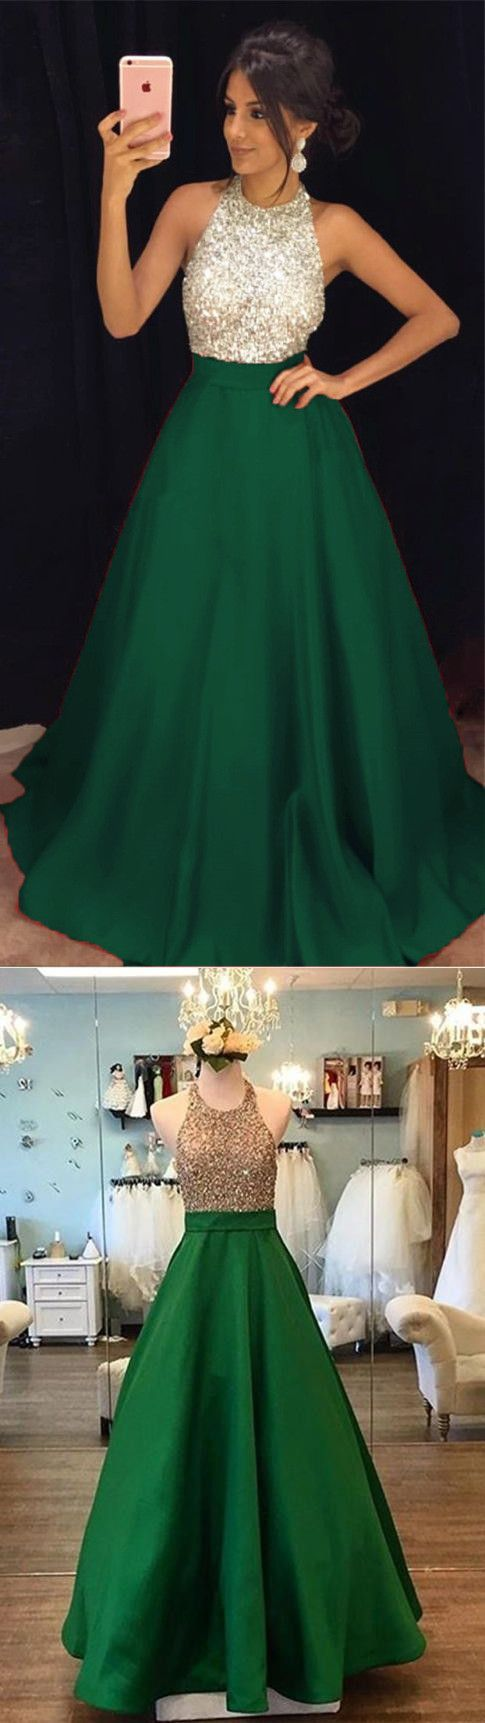 Green A-line Prom Dresses Long, Prom Dress, Evening Dresses, Formal ...